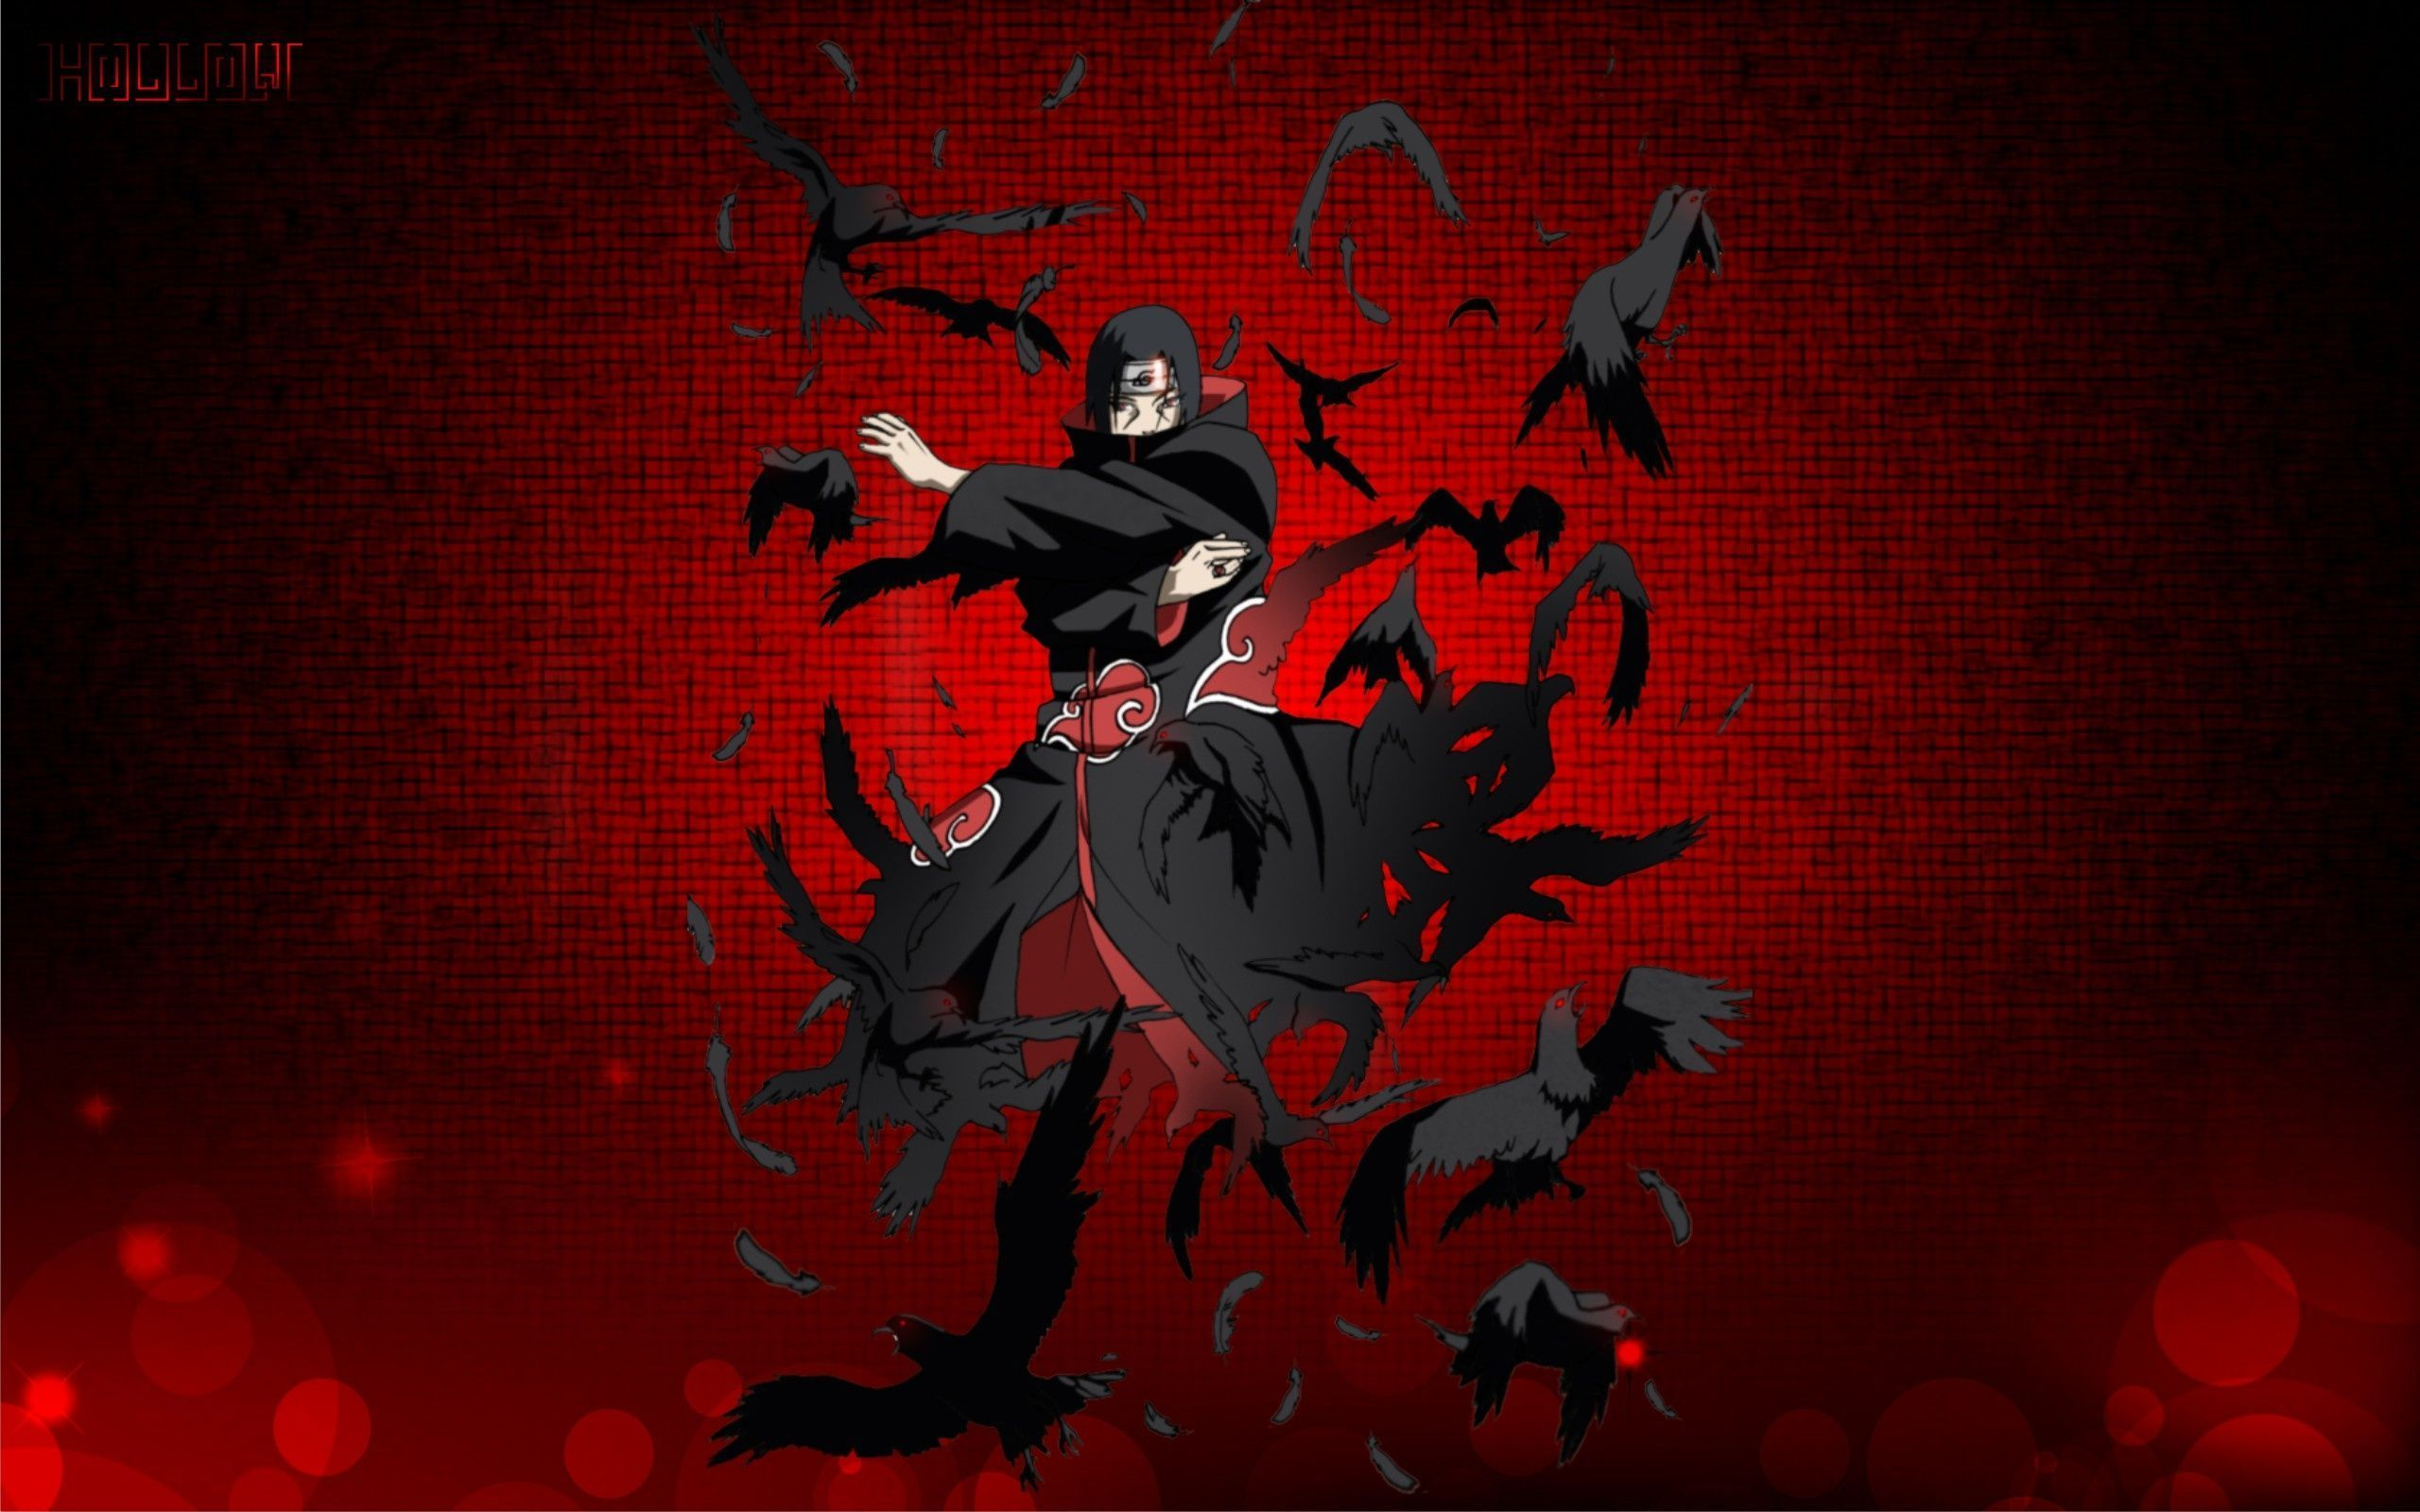 Naruto Shippuden Itachi Wallpaper Free Bli Naruto Wallpaper Iphone Naruto Wallpaper Sharingan Wallpapers